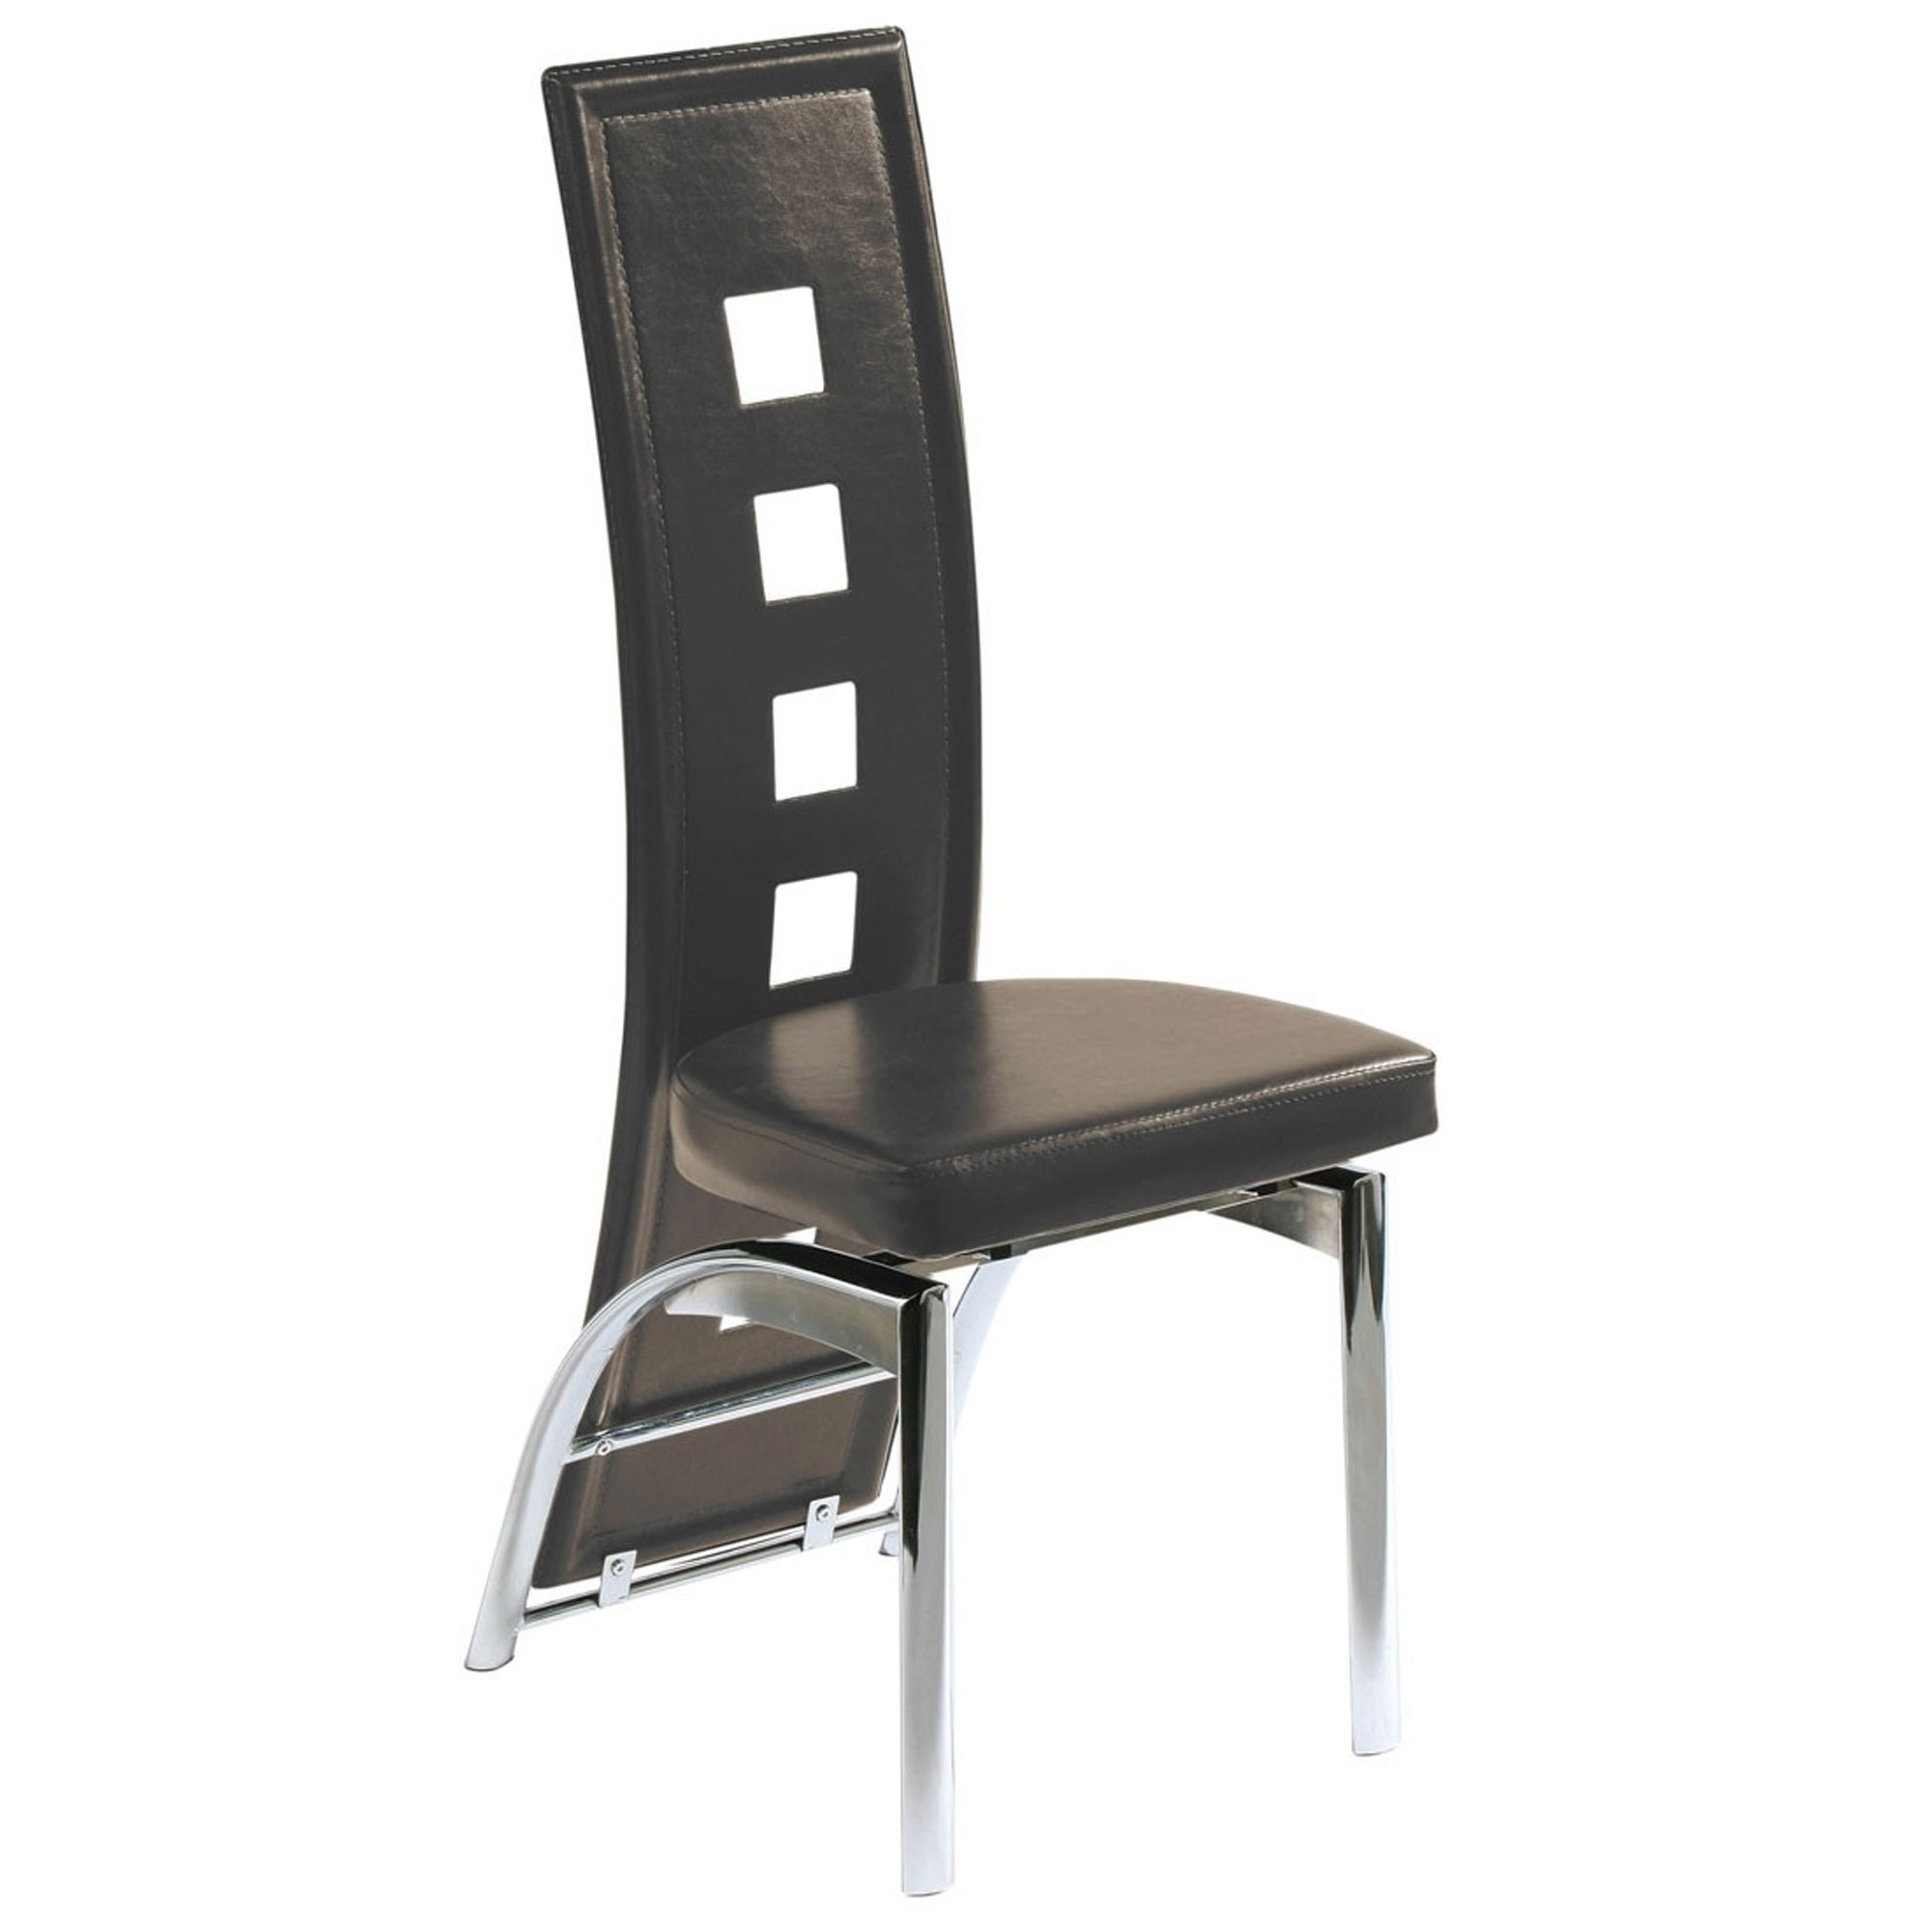 4 dining chairs upholstered set of dining chairs modern contemporary furniture